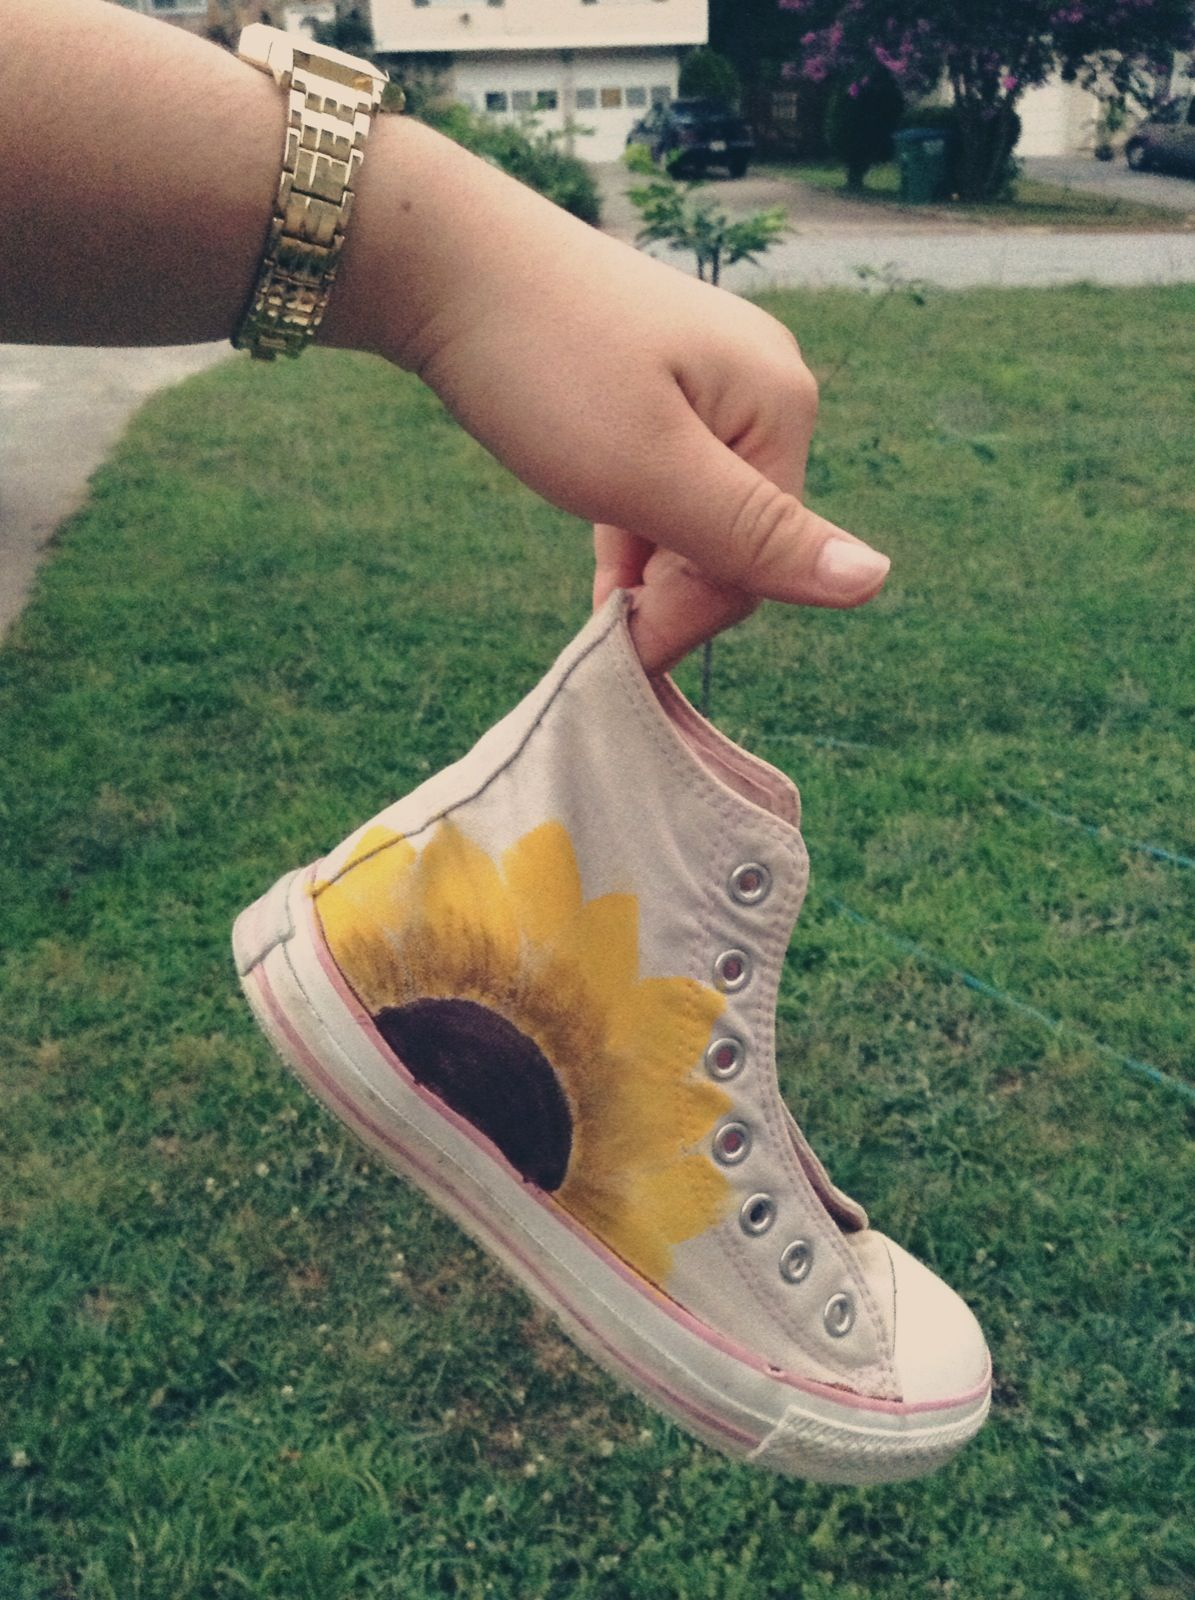 I painted my old converse | Diy